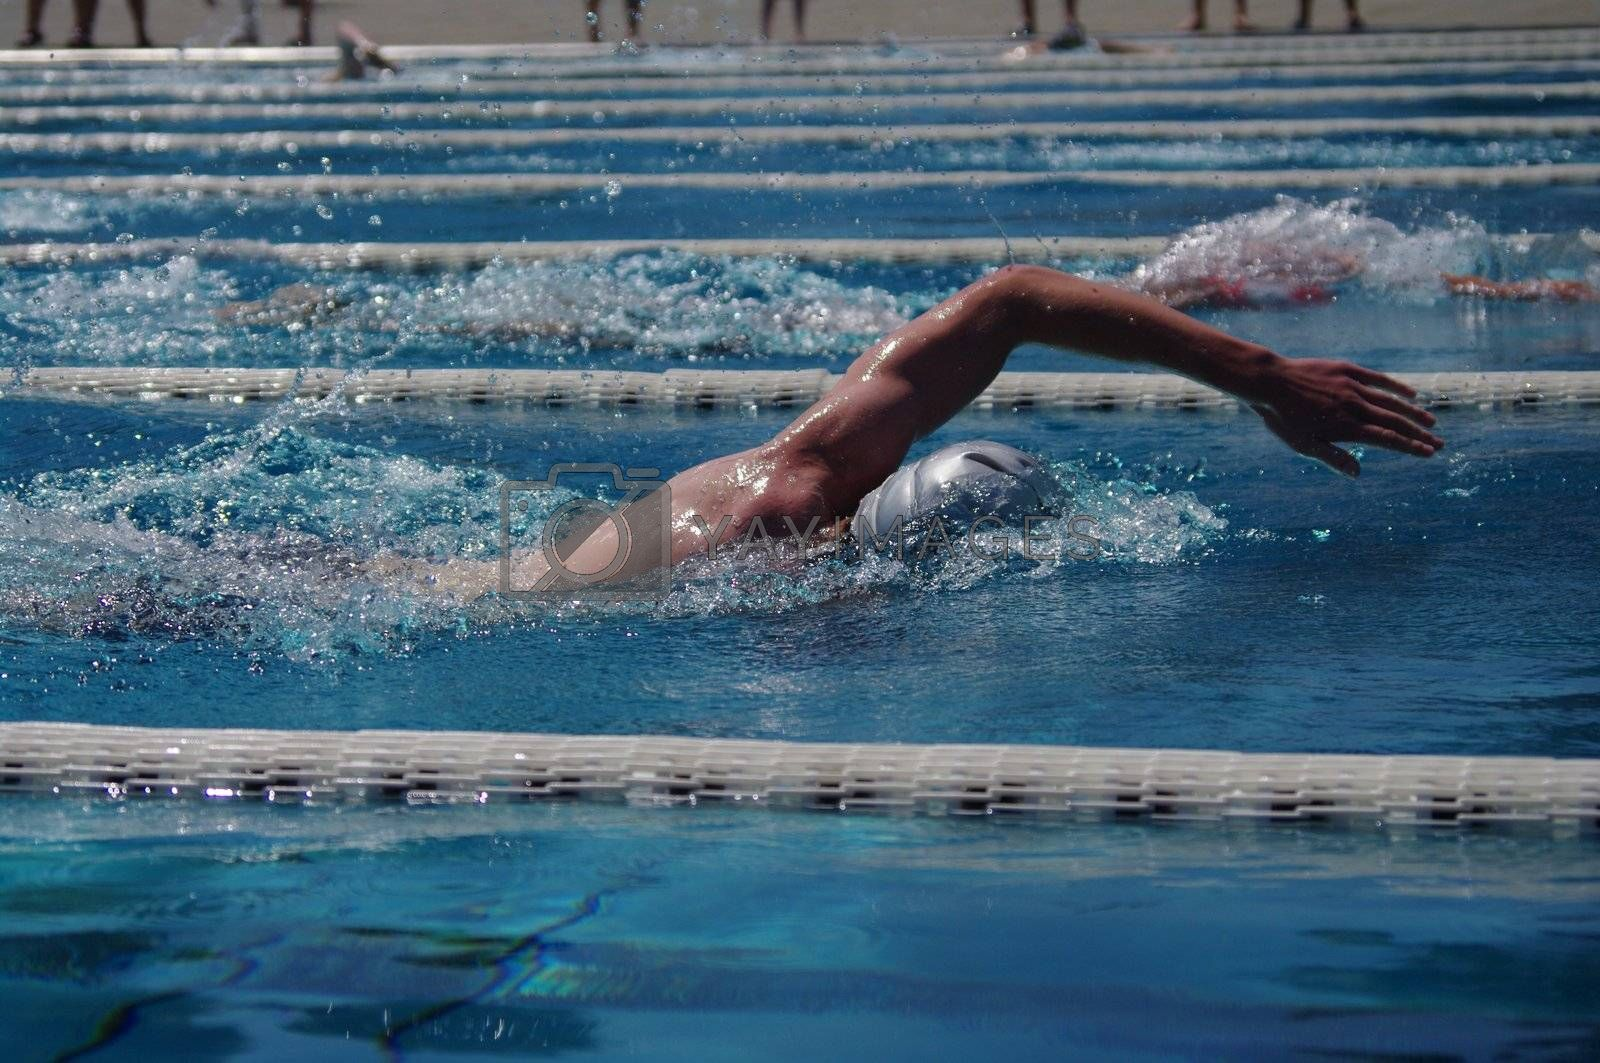 Freestyle swimmer in the outdoor swimming pool